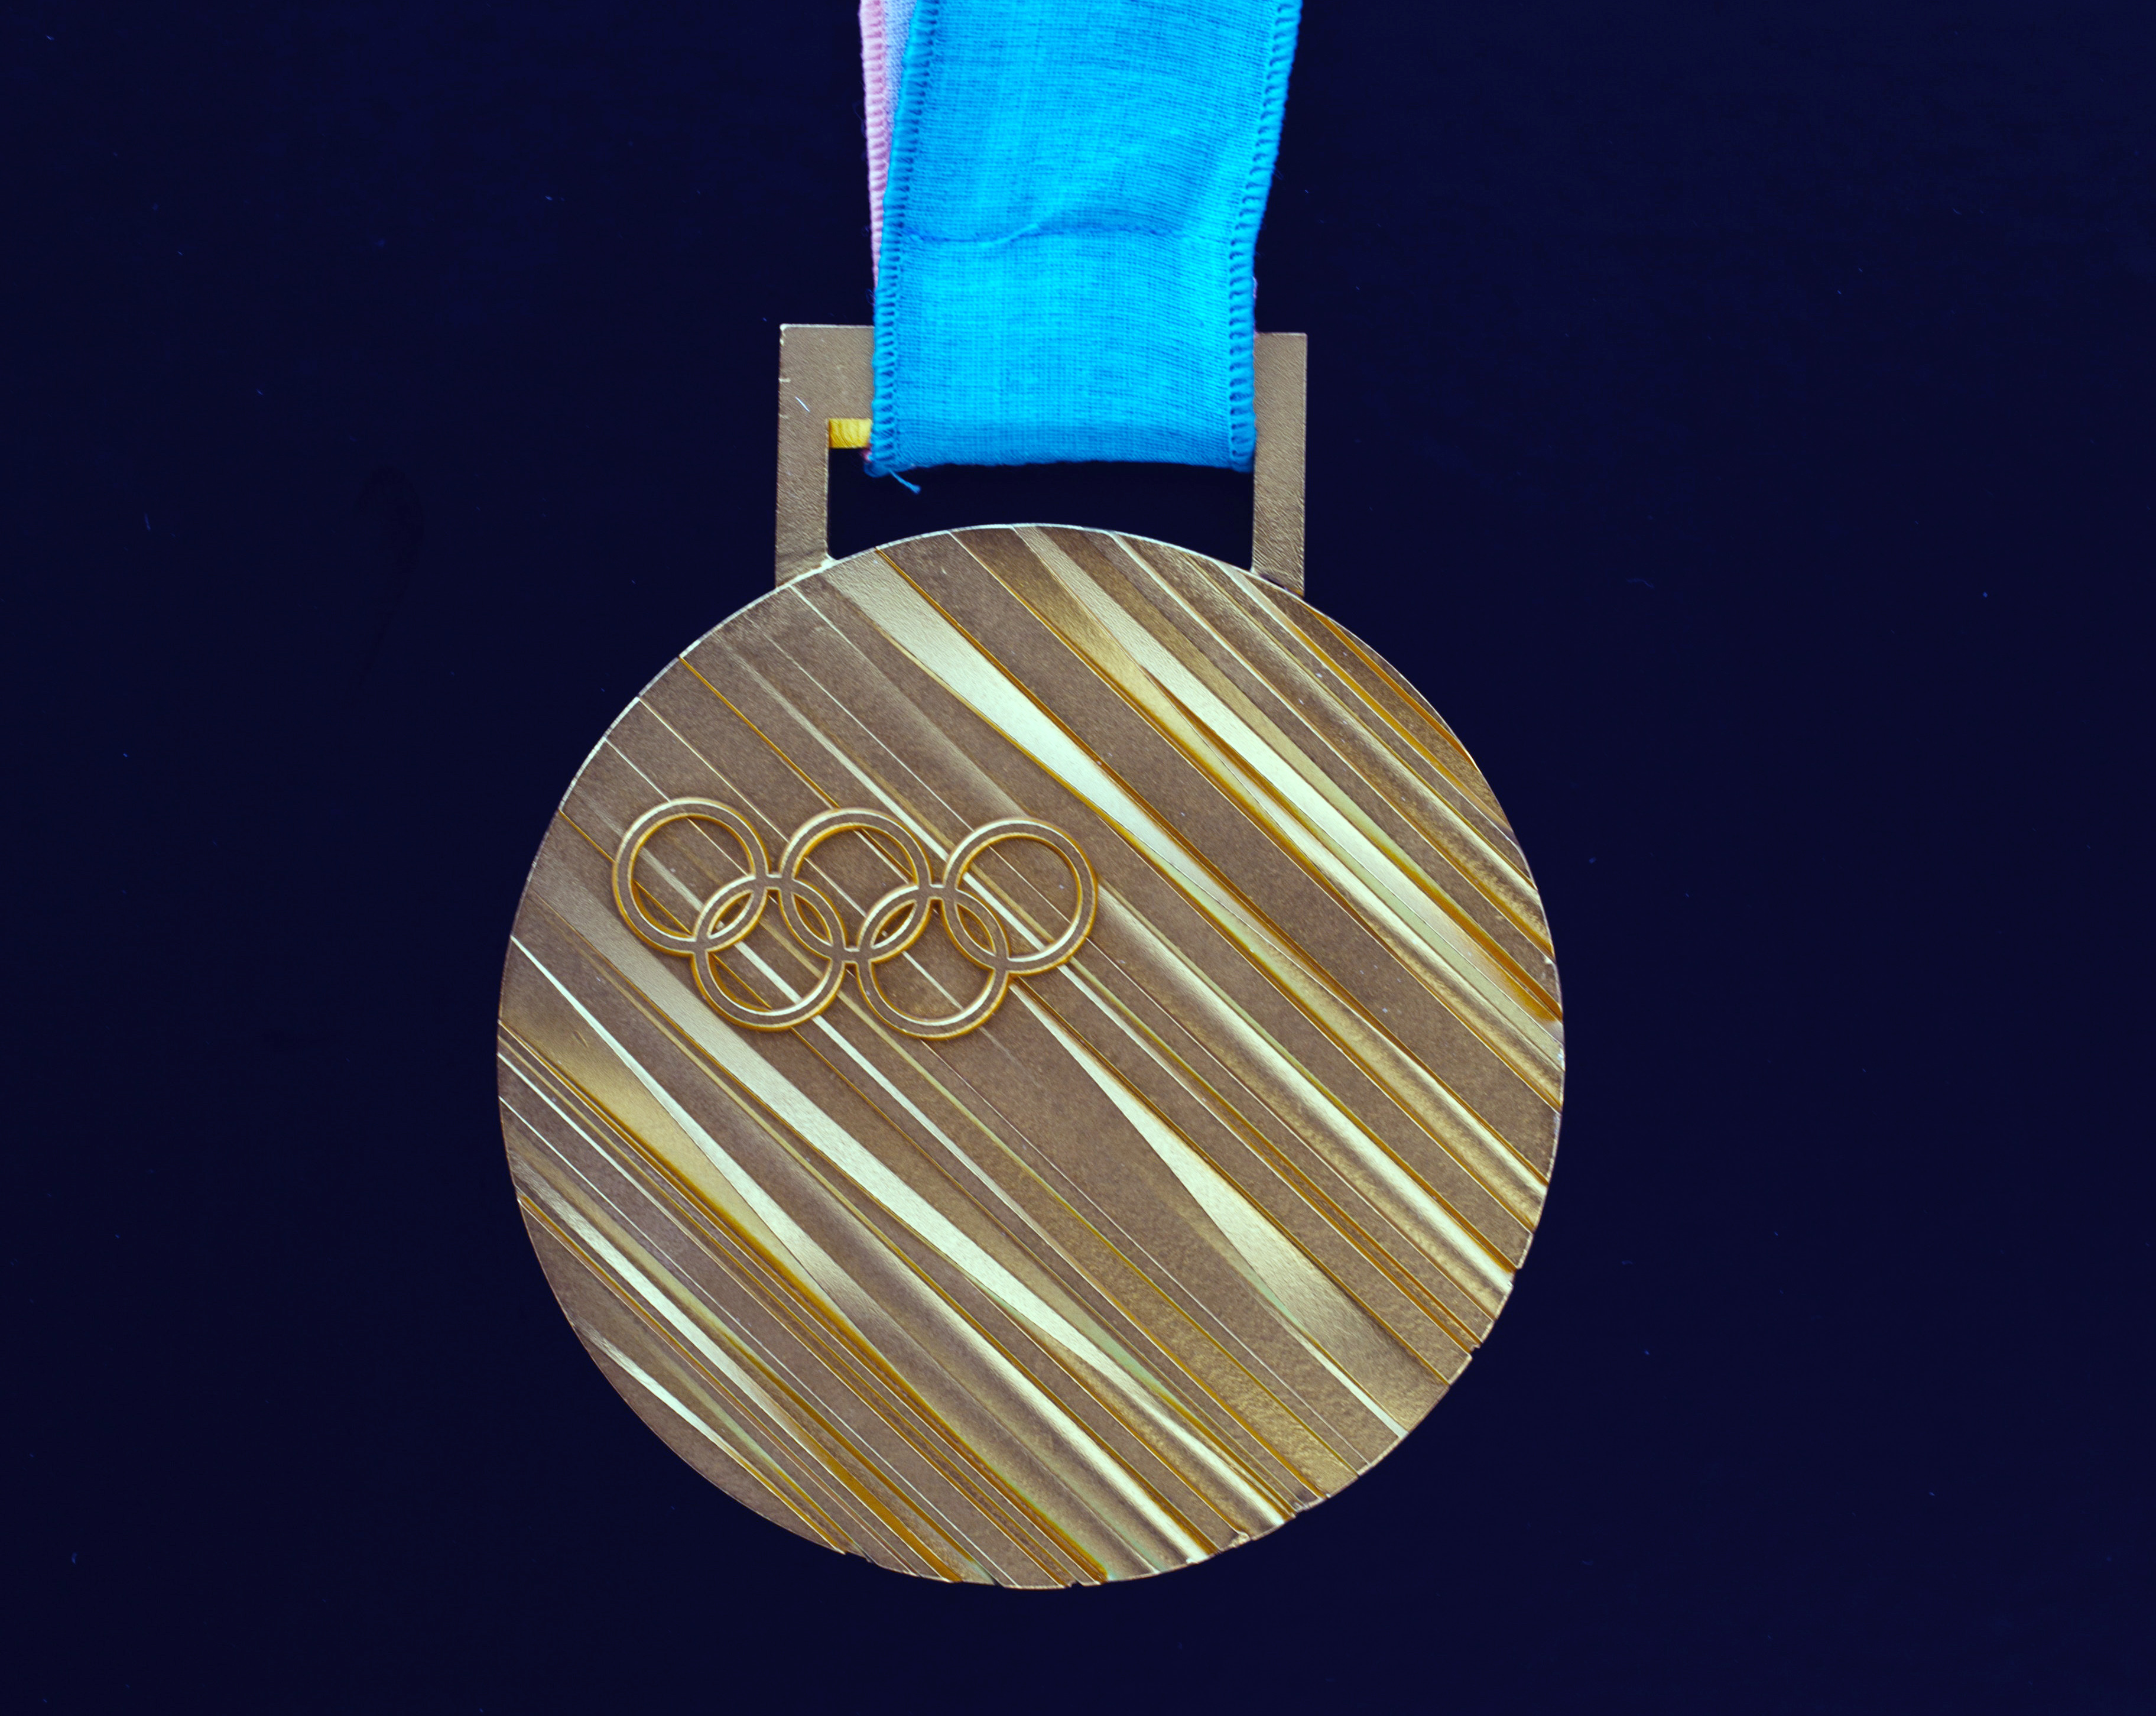 Winter Olympics 2020 Medals.Winter Olympics Archives Conceptdrop